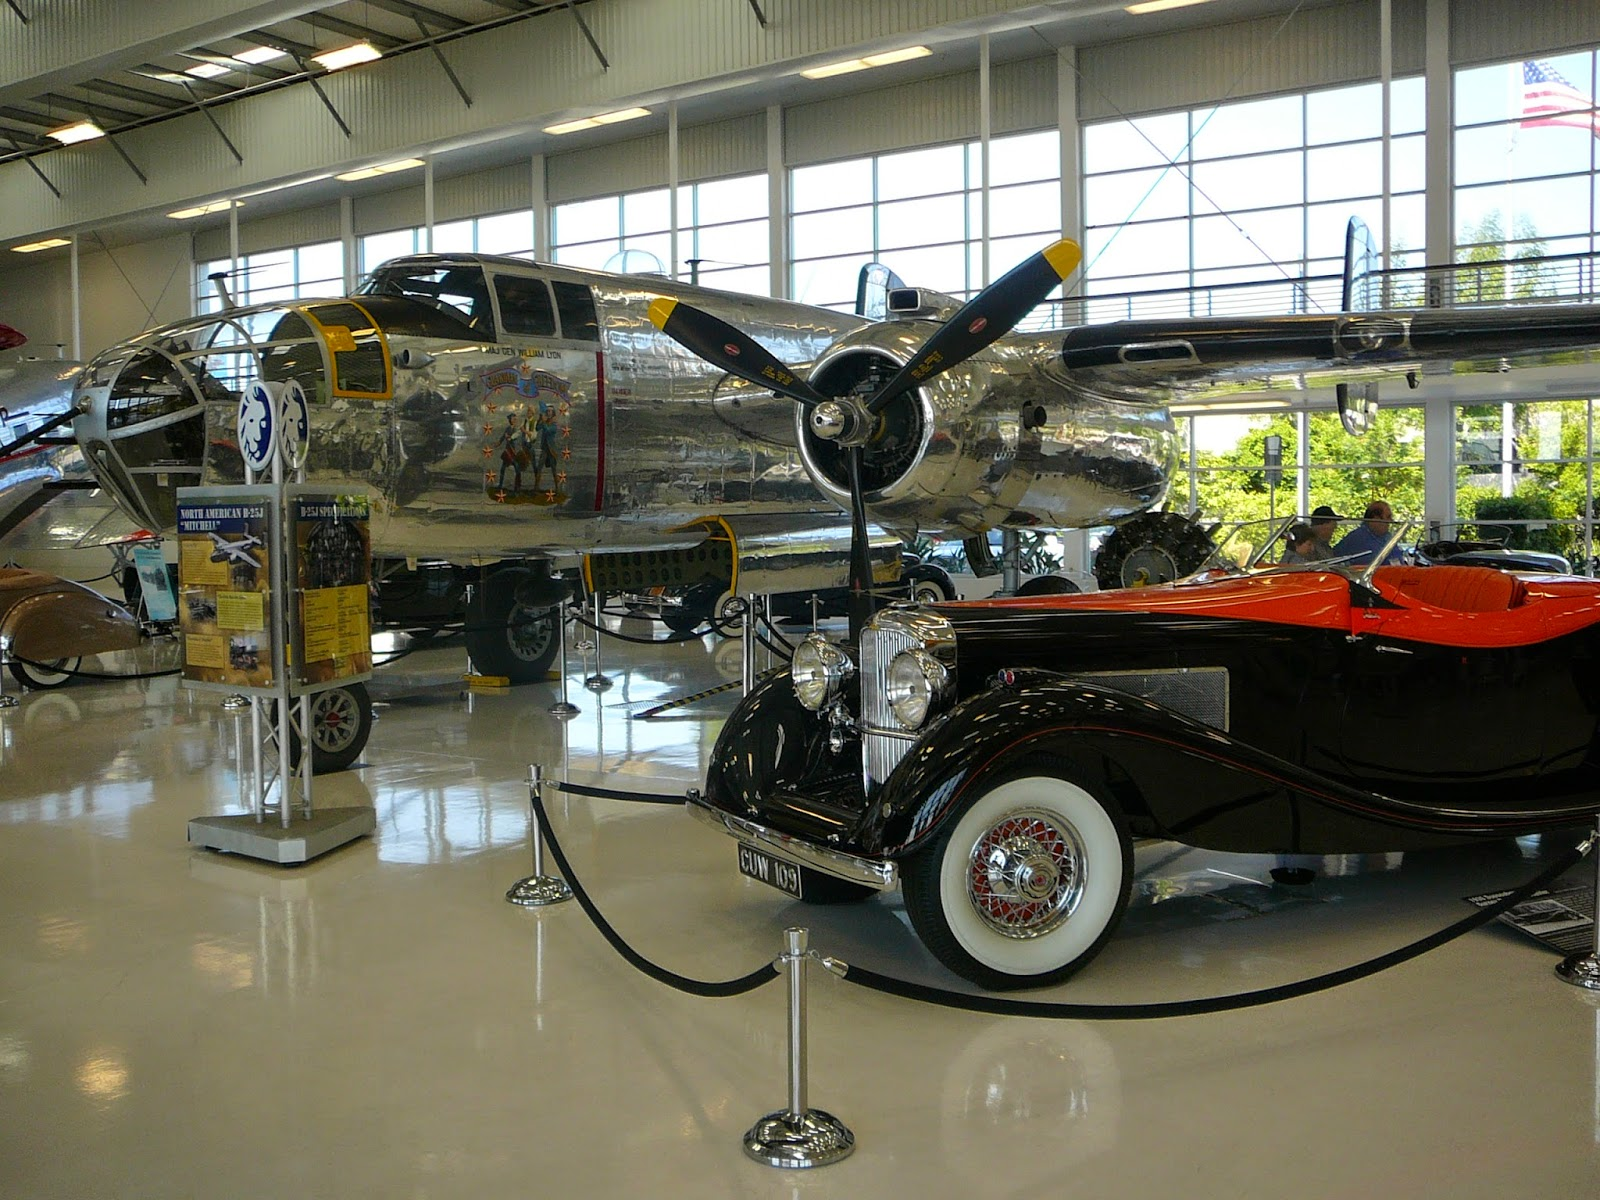 orange county structure little known lyon air museum tucked away by john wayne airport. Black Bedroom Furniture Sets. Home Design Ideas